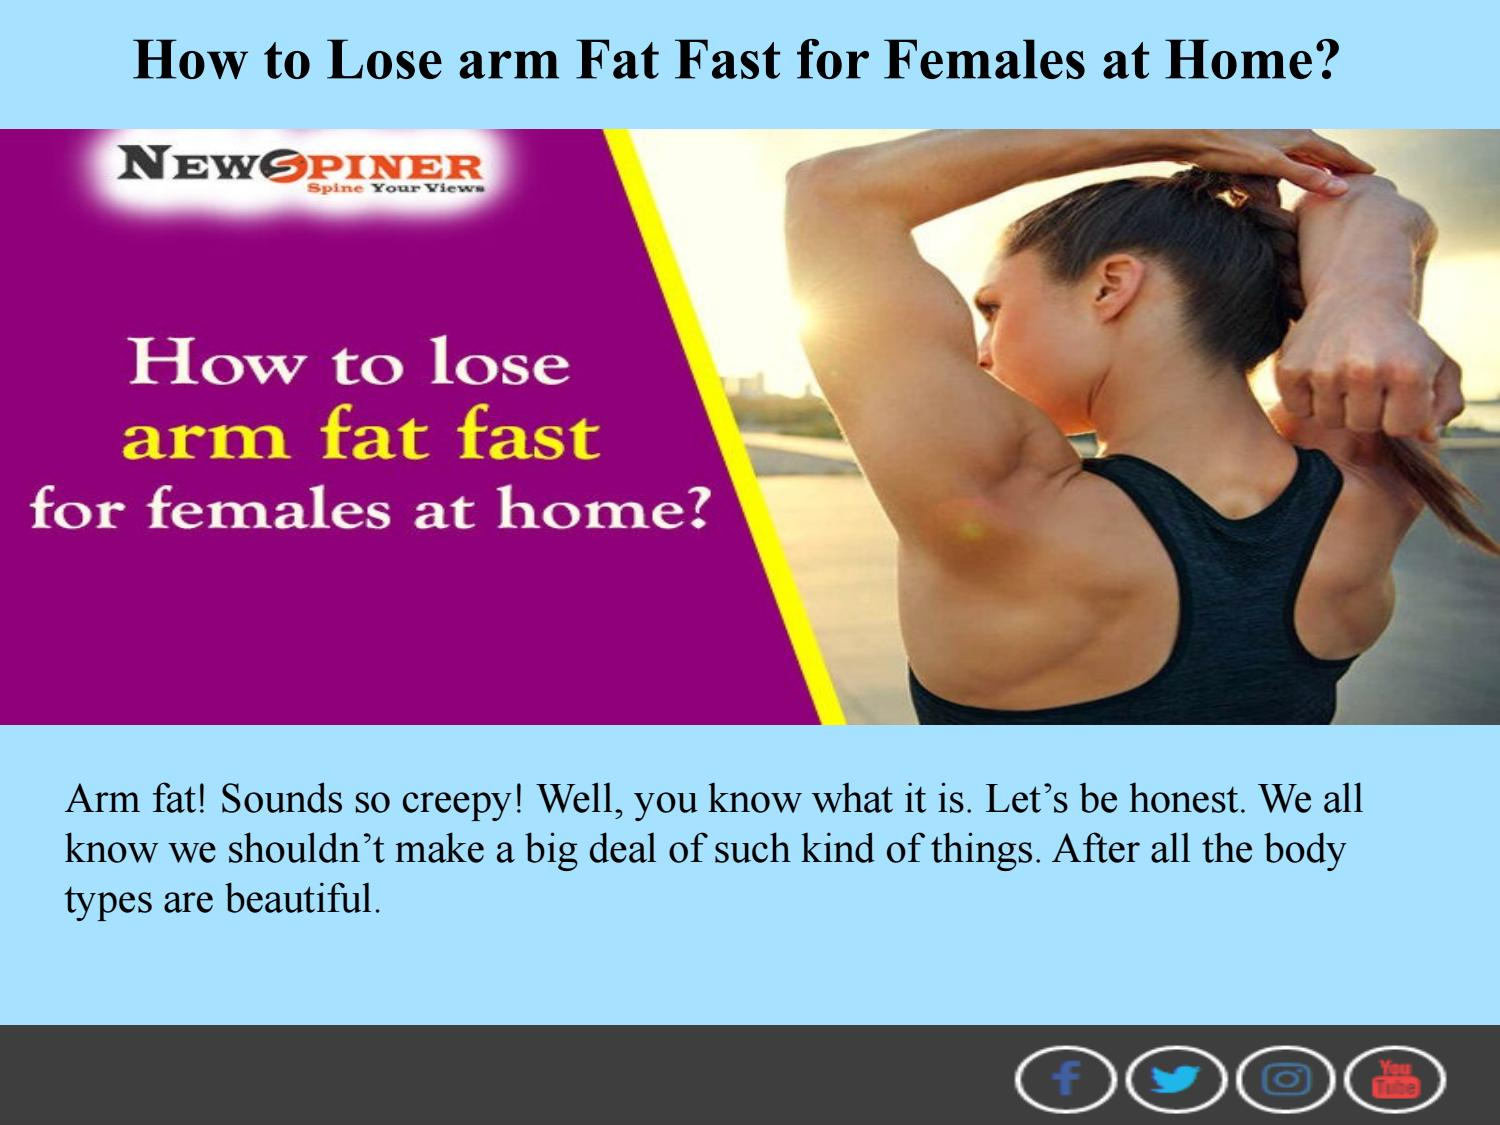 How to Lose Arm Fat Fast for Females at home by newspiner11 - issuu